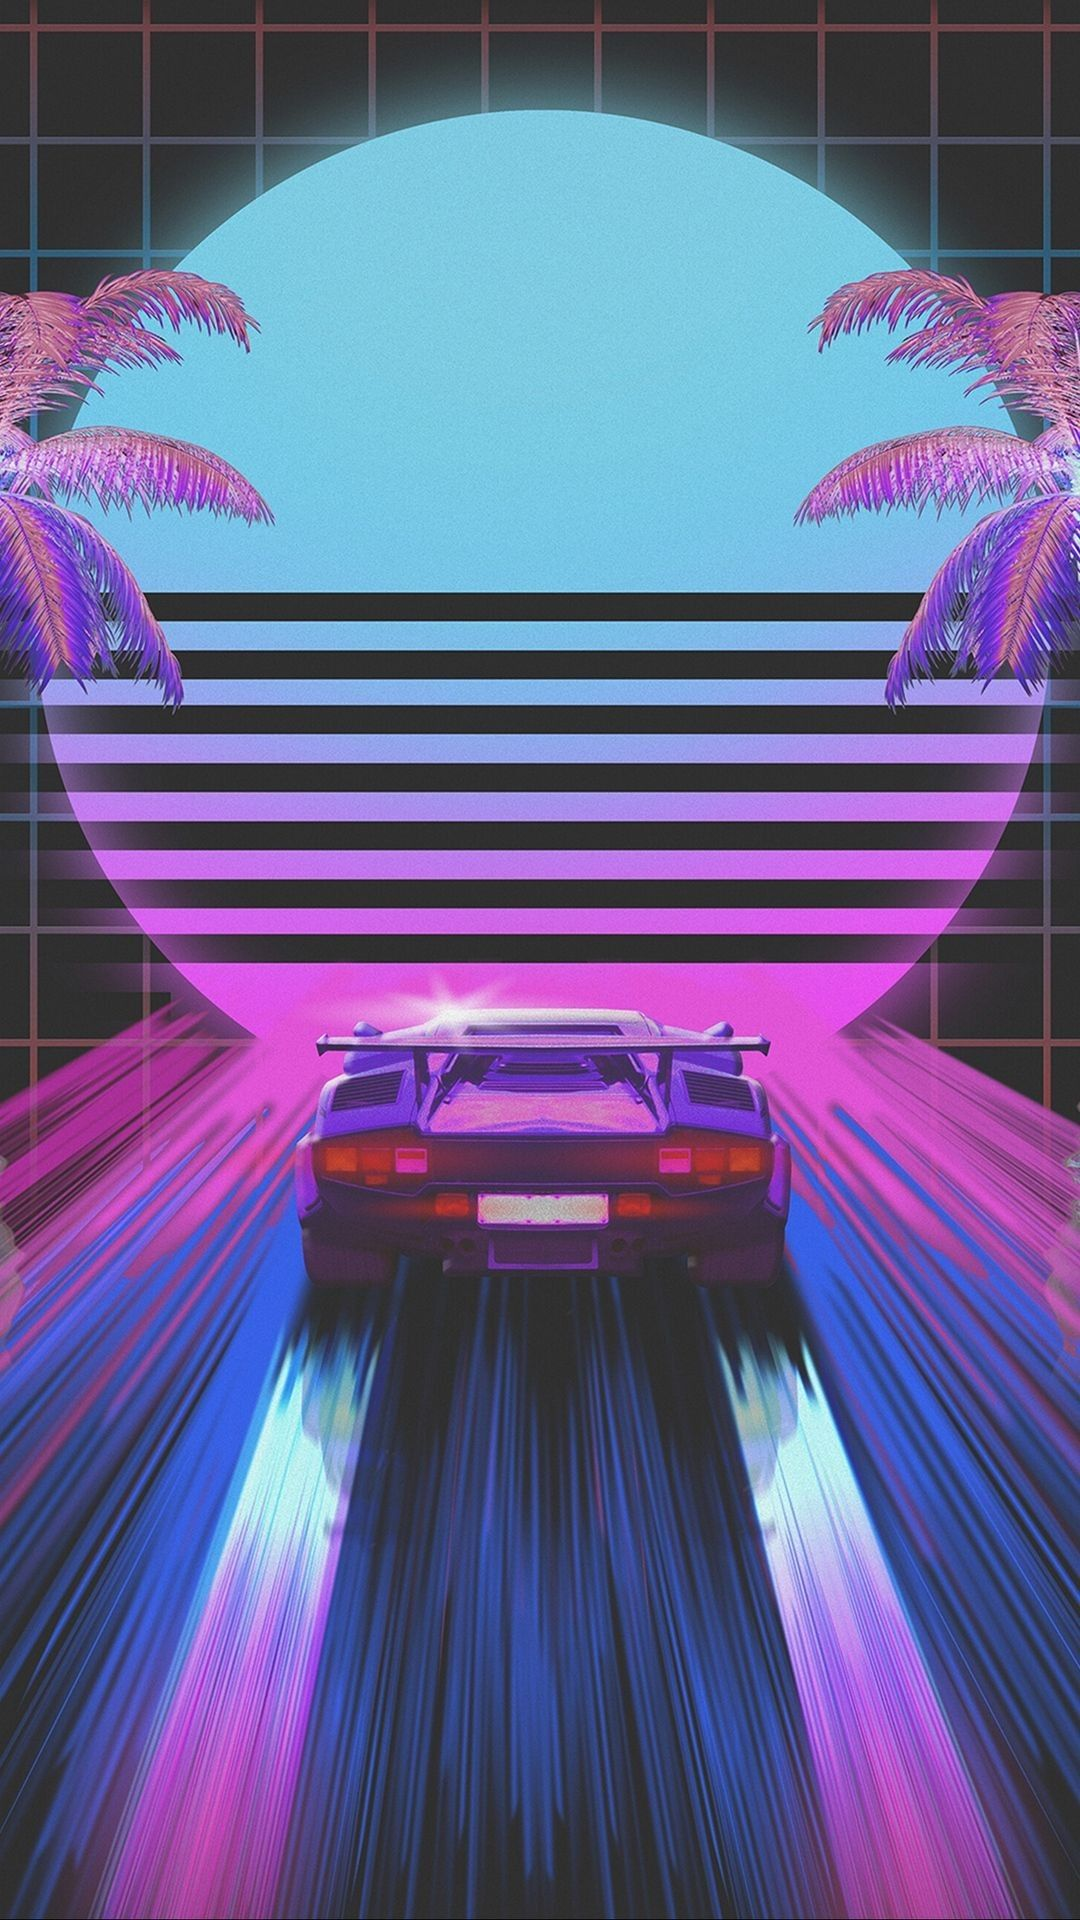 Awesome 80s Neon in 2020 | Vaporwave wallpaper, Neon ...